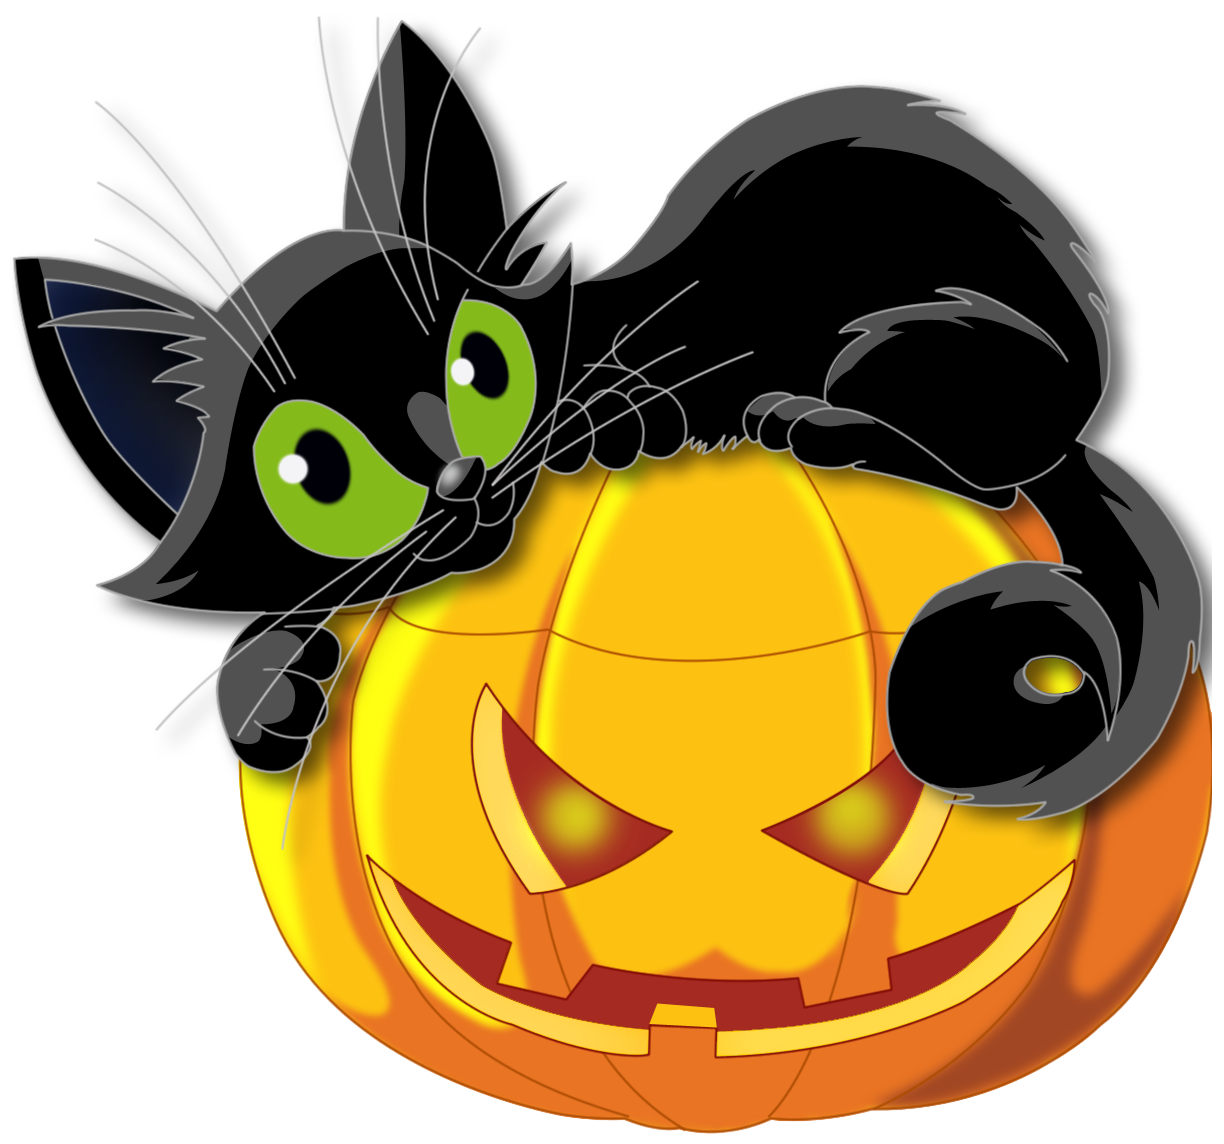 halloween image clipart - photo #23